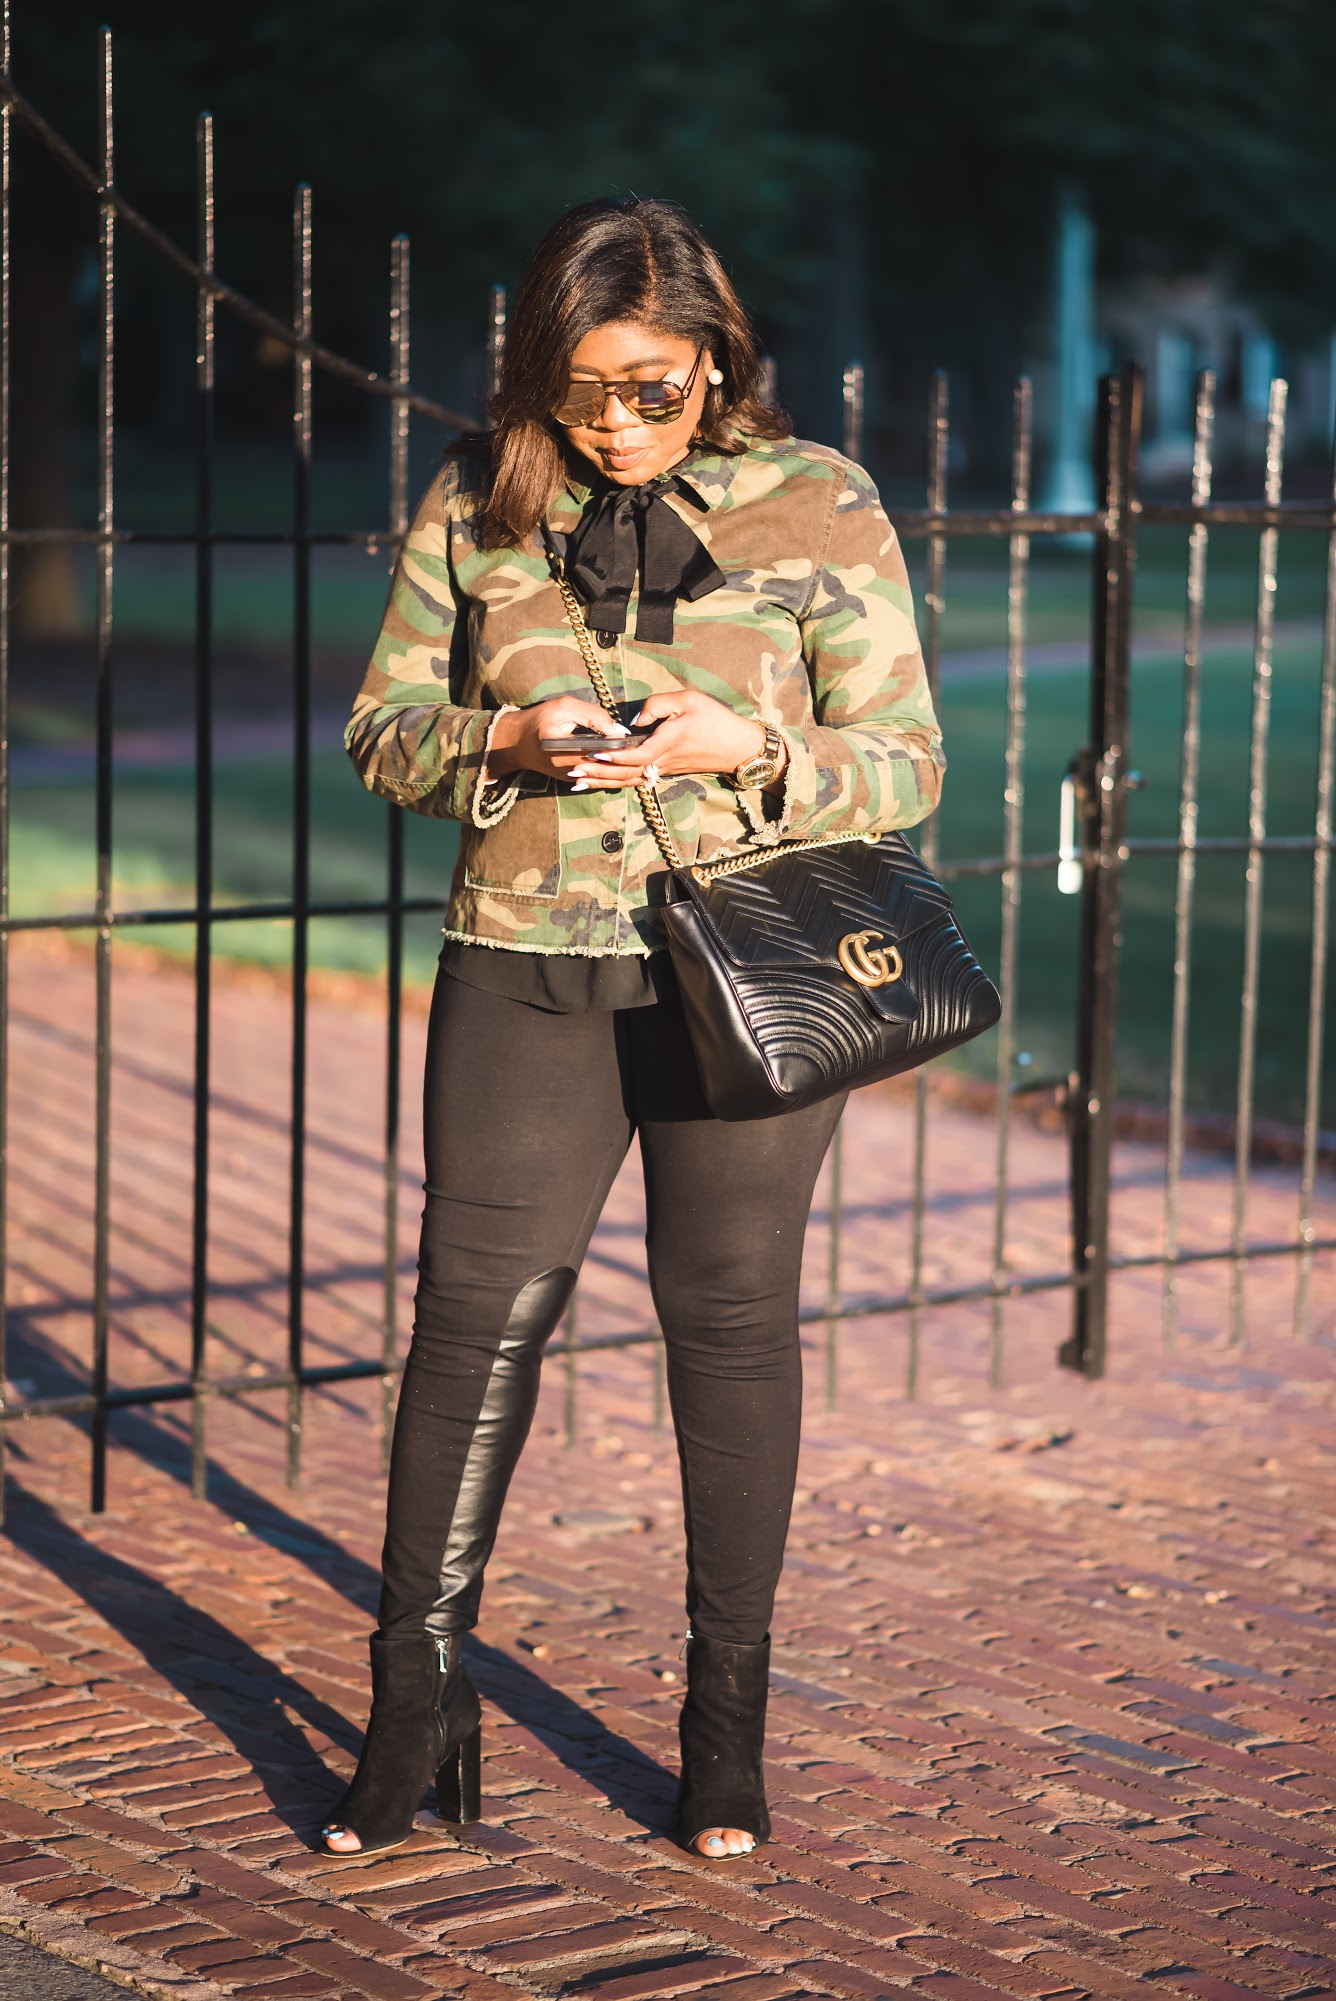 Falling into Autumn Series: The Camo Jacket (Pt.2)